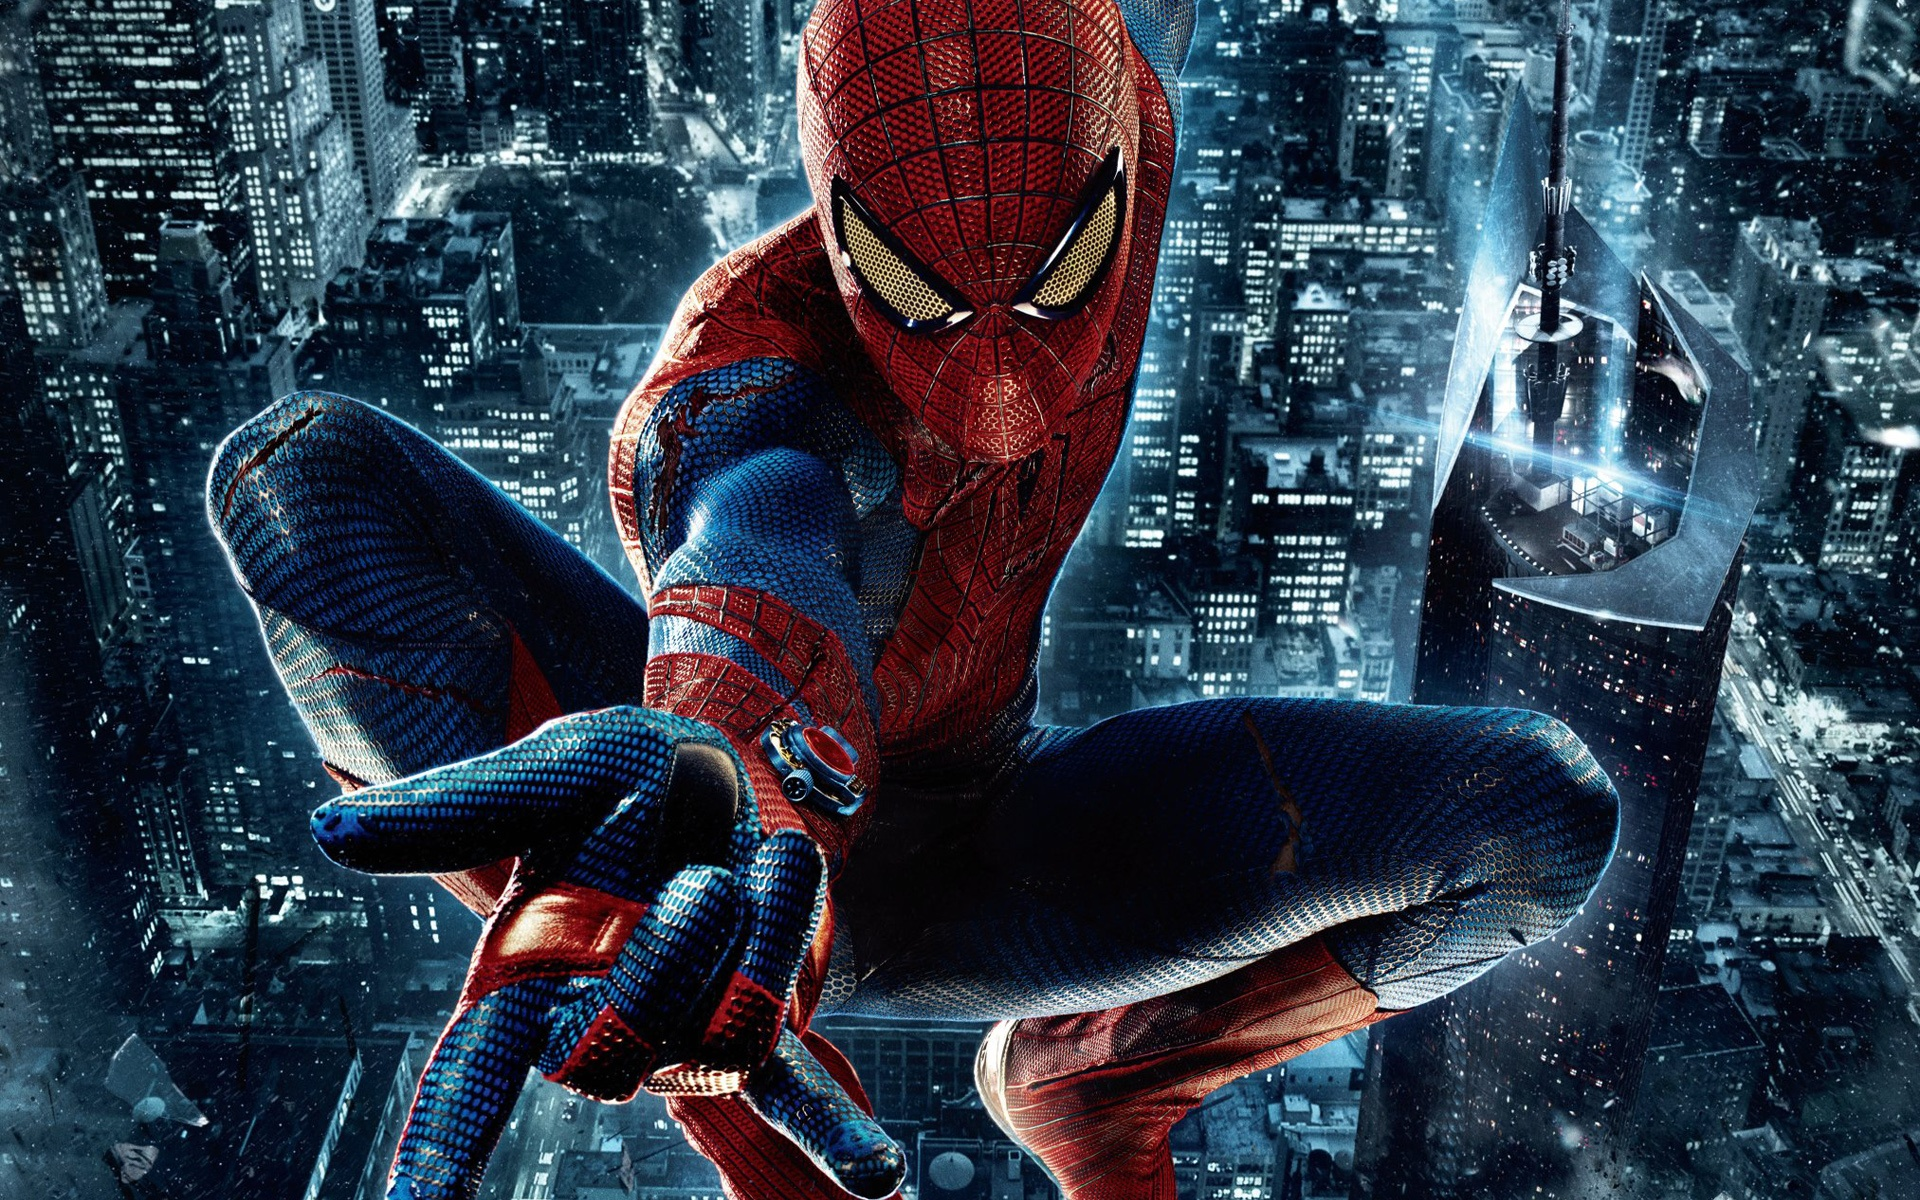 Wallpaper The Amazing Spider Man Night City 1920x1200 Hd Picture